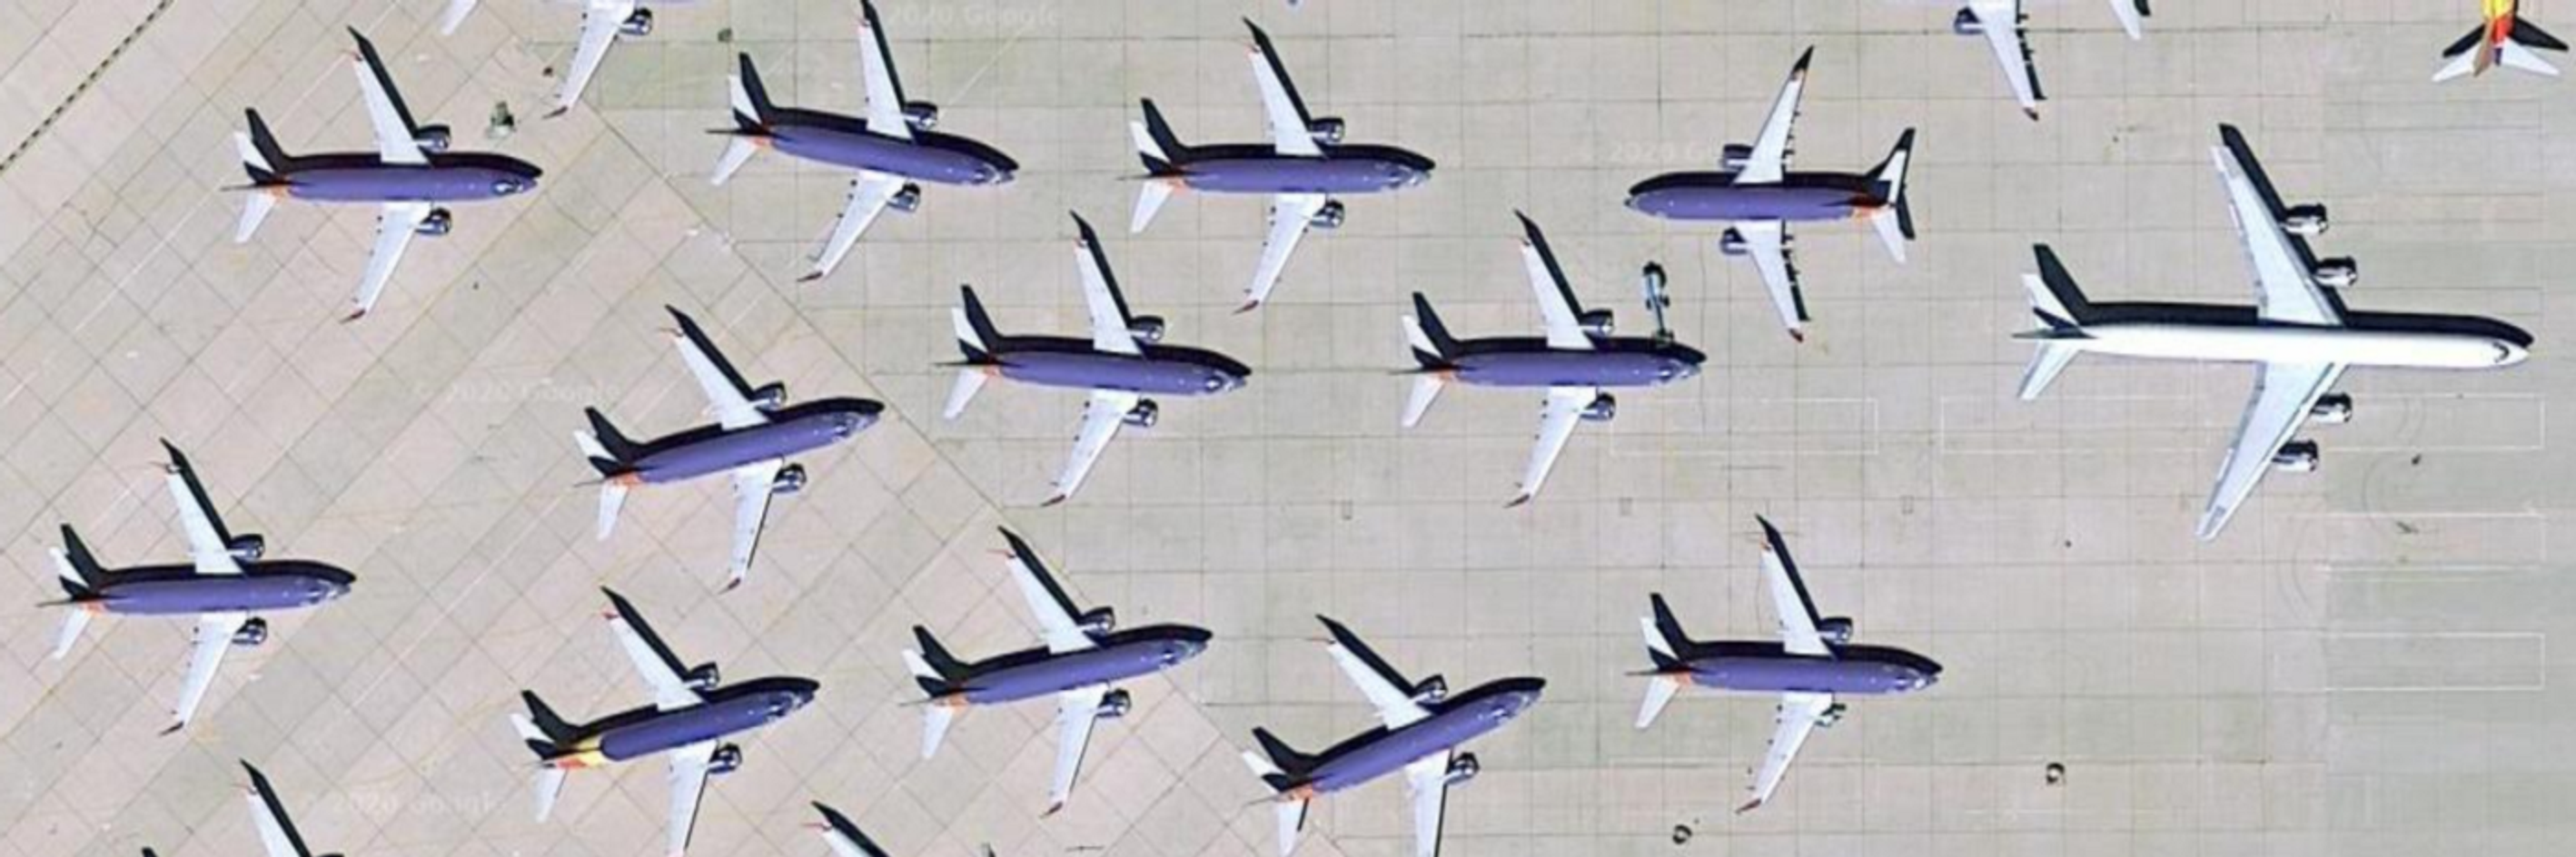 A group of airplanes parked on a runway